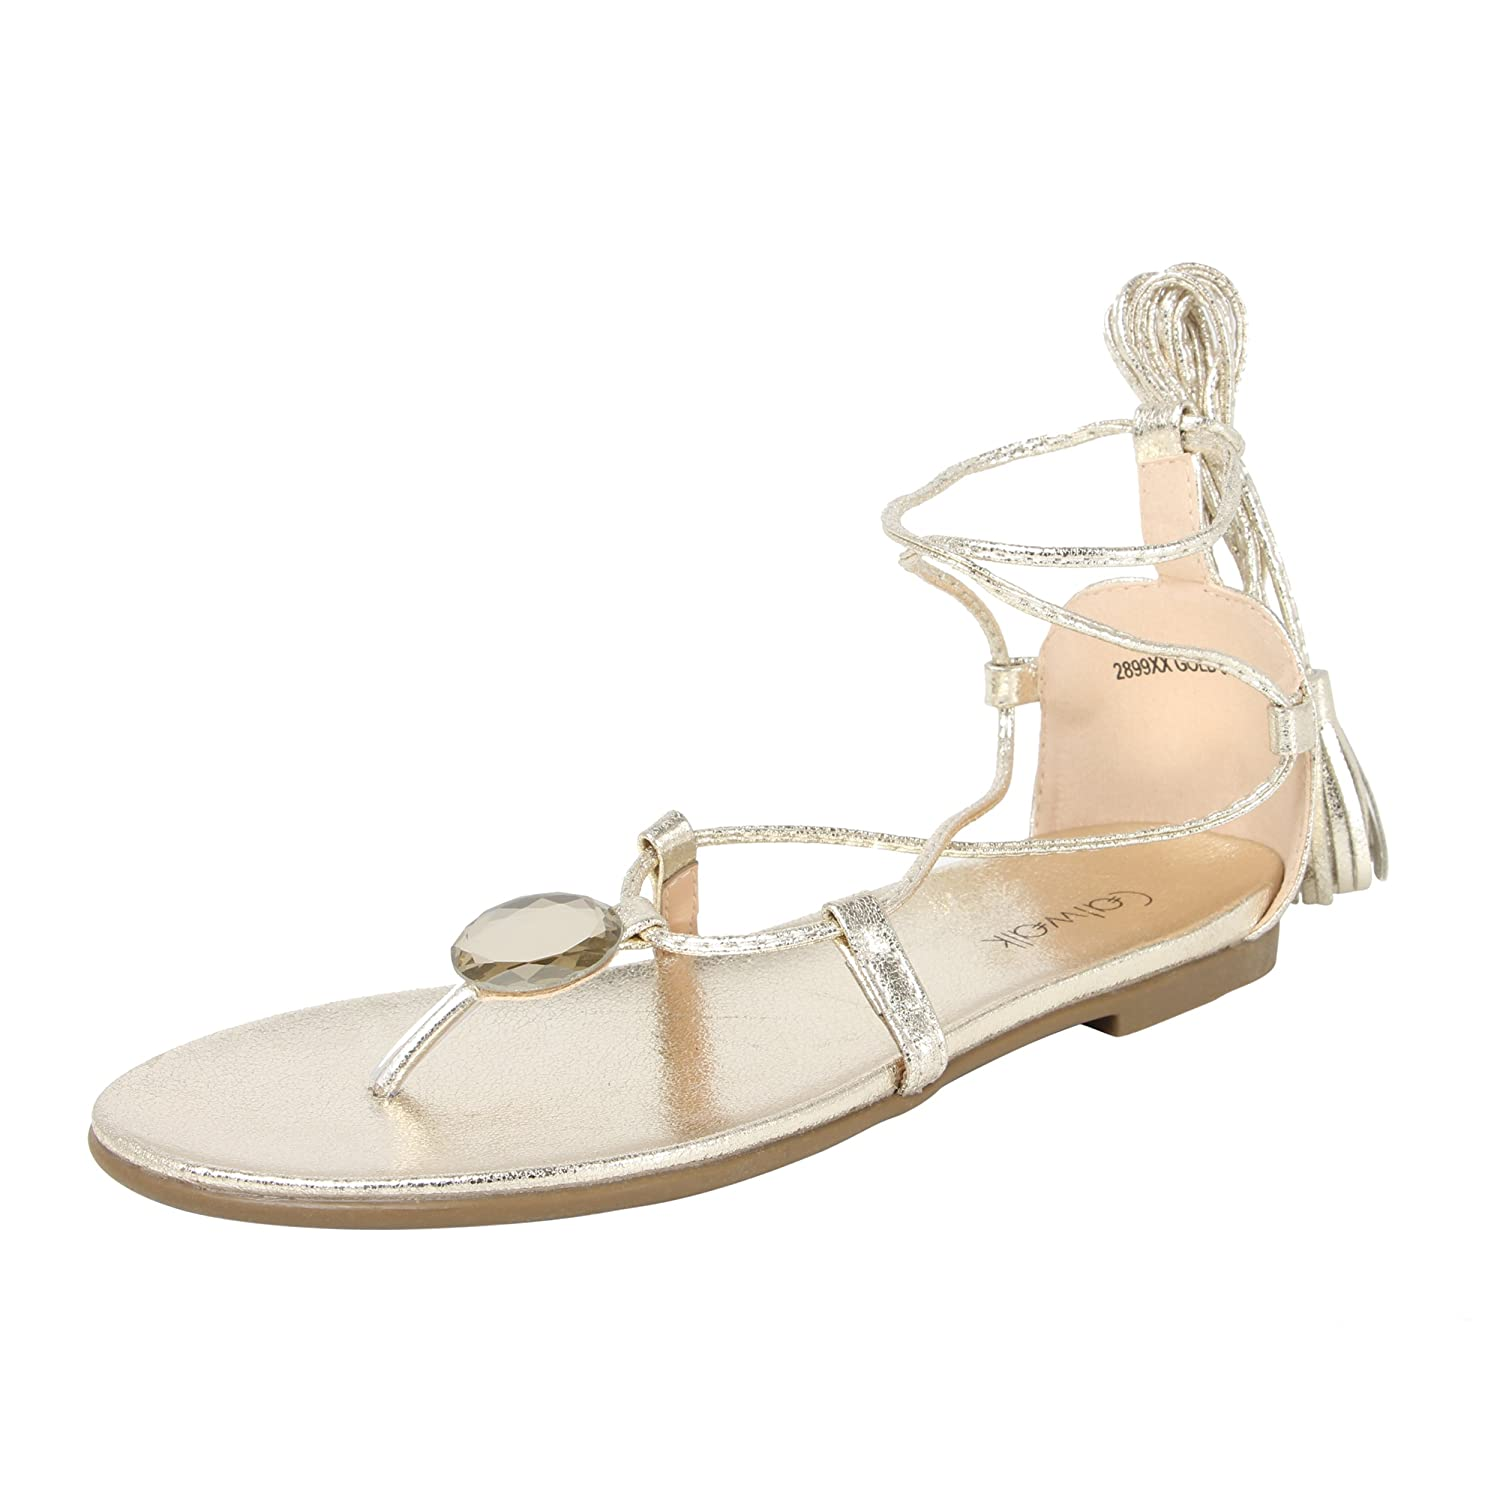 719d6d6dba1fa2 Catwalk Gold Ankle Wrap Sandals  Buy Online at Low Prices in India -  Amazon.in